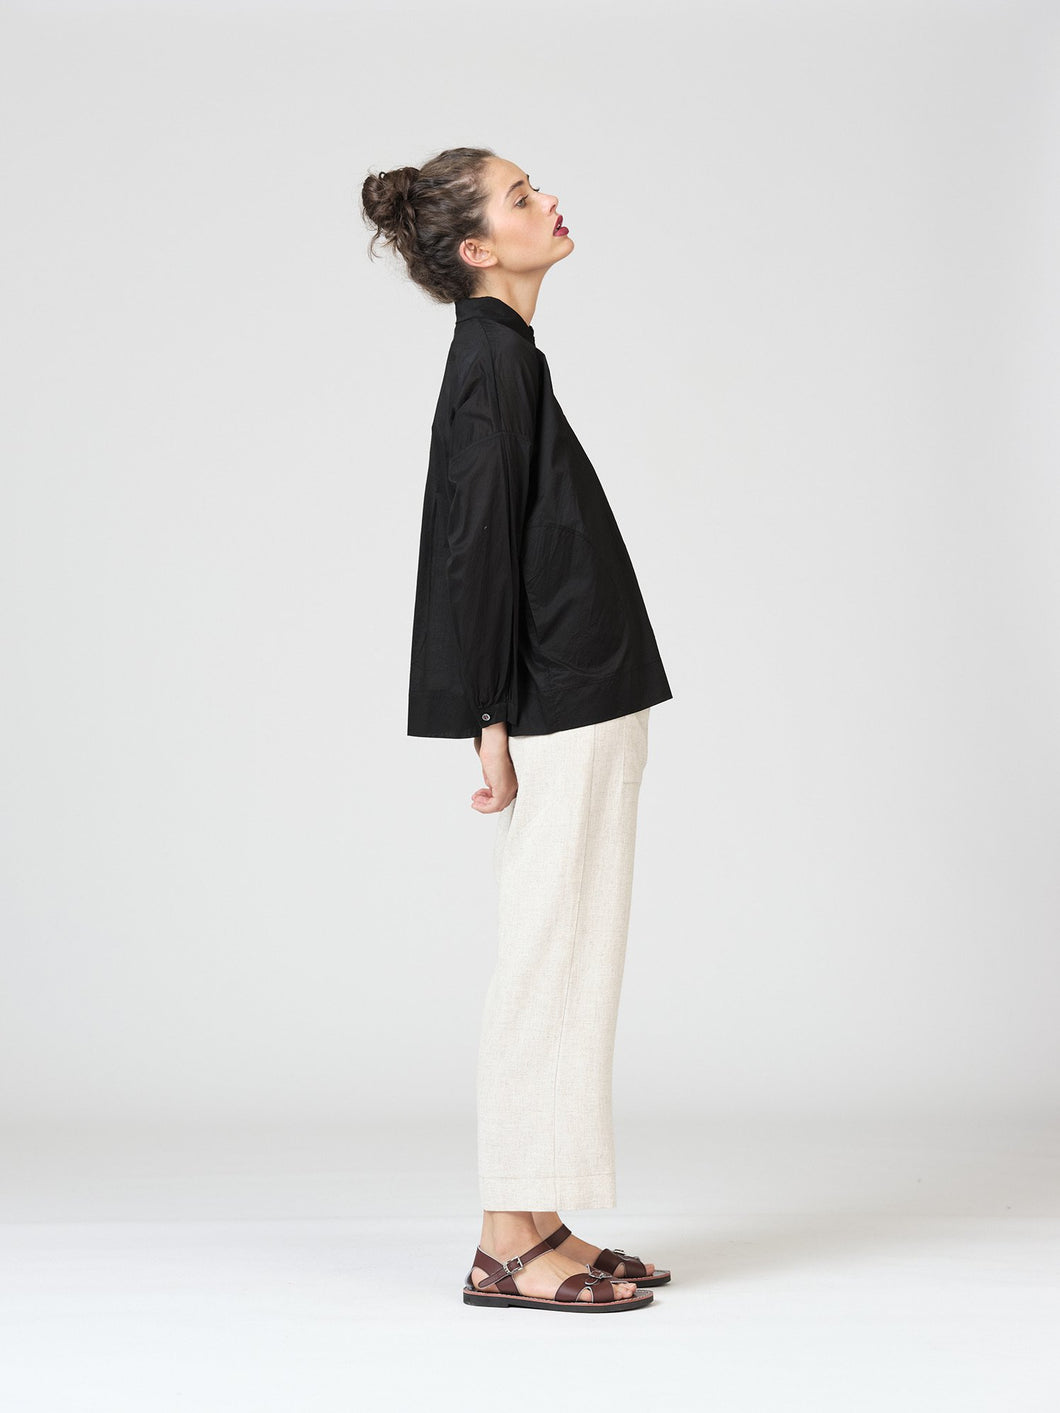 Clarence Shirt - Black Voile